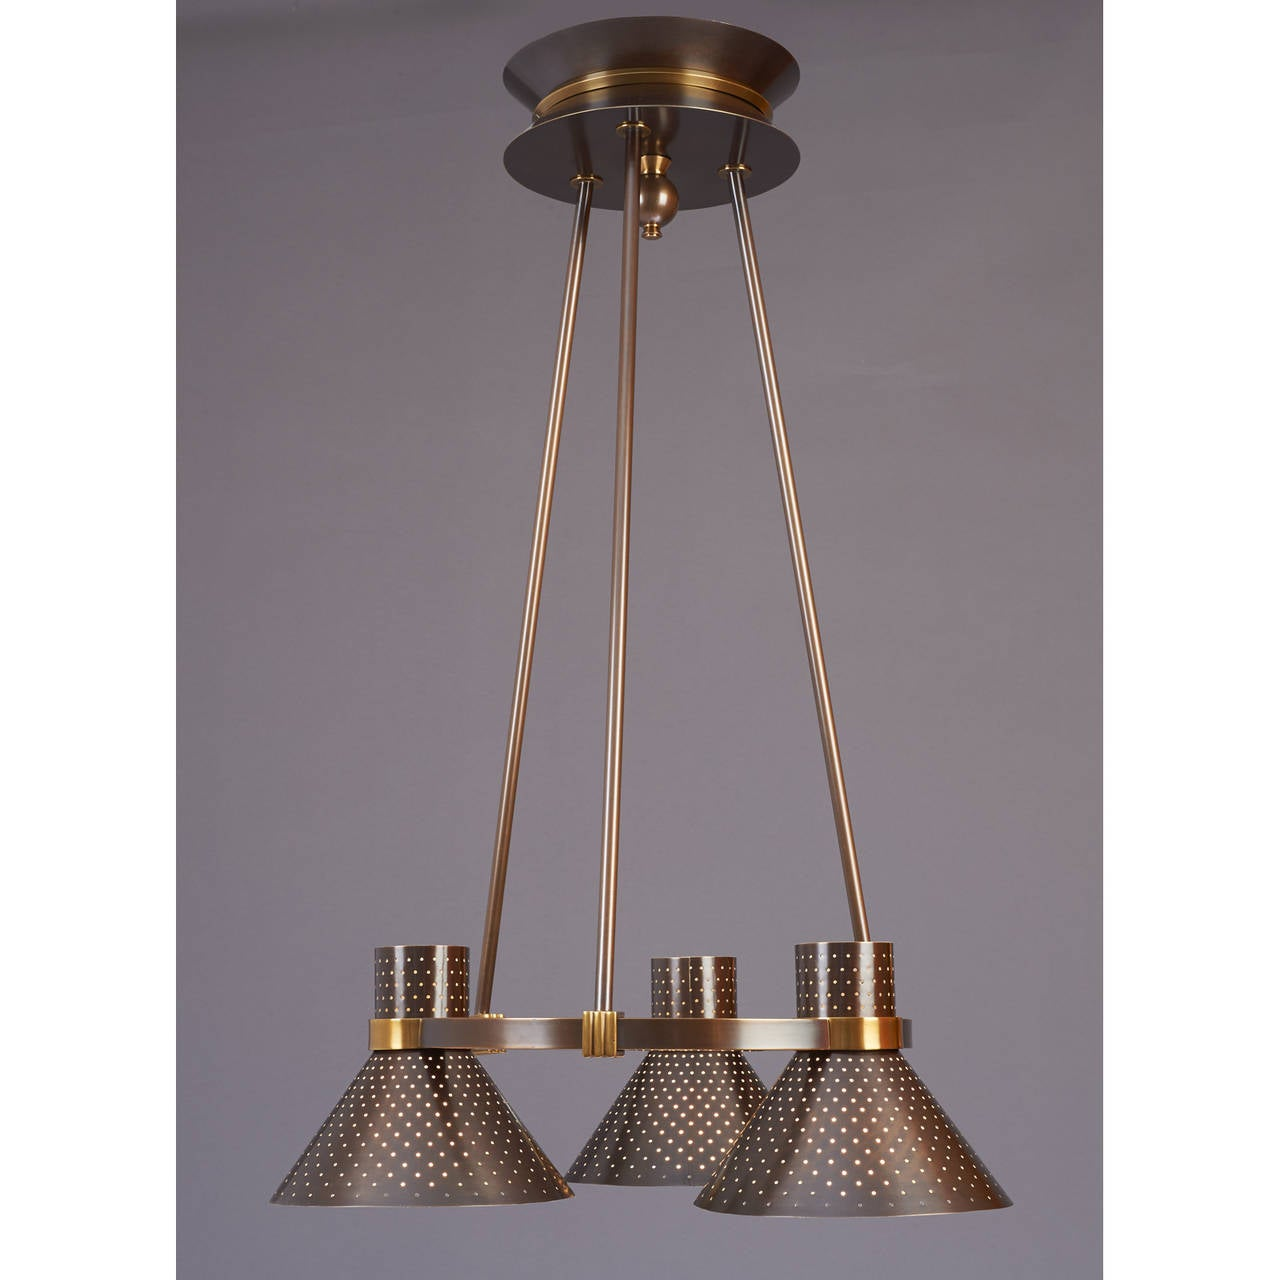 Mid-Century Modern Modernist Bronze Chandelier with Perforated Shades, France, 1950s For Sale